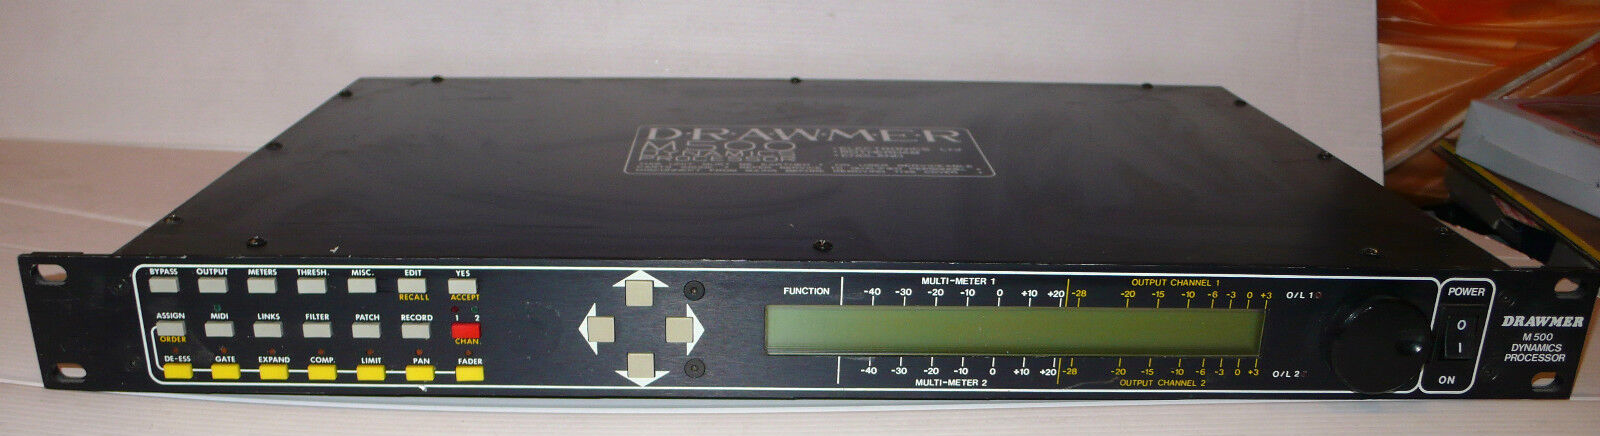 DRAWMER  M-500    Dynamic Sound Processor RACK STUDIO VINTAGE